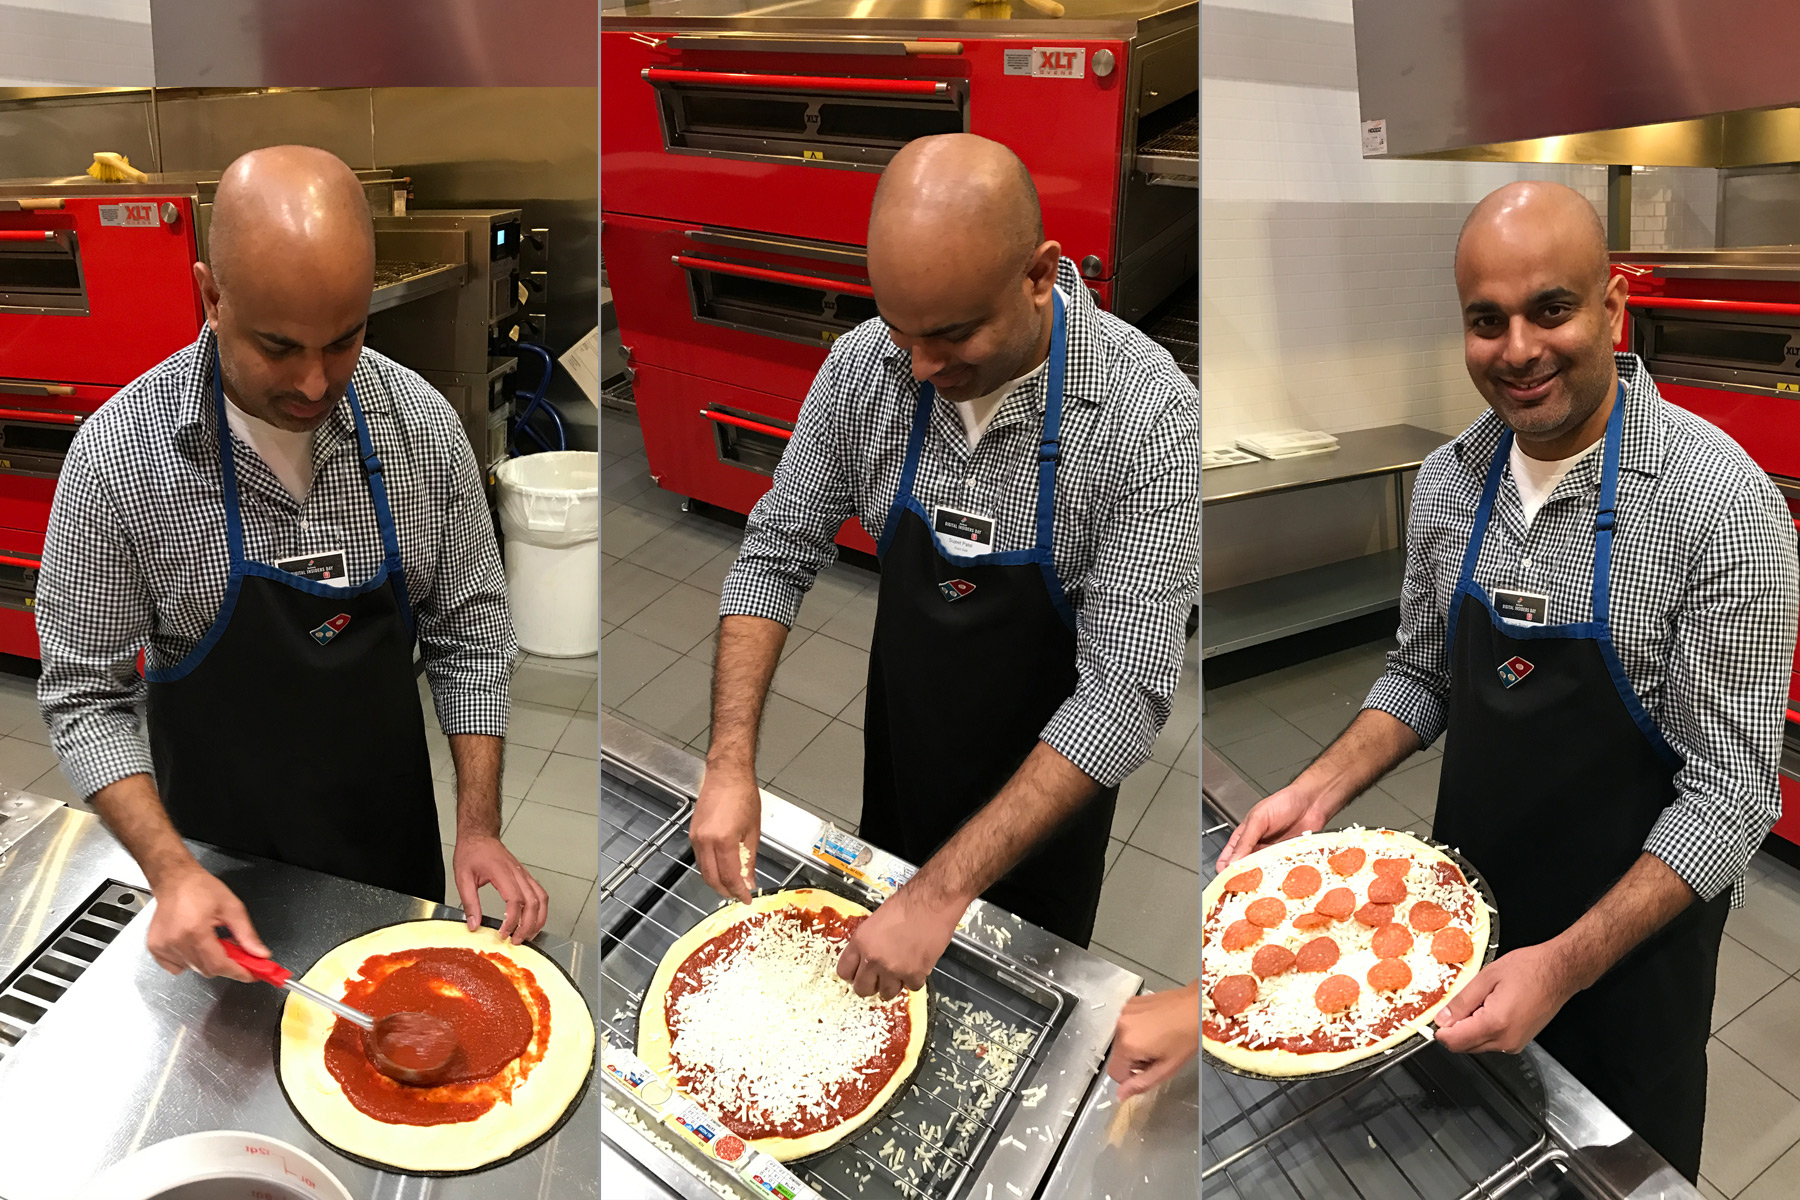 Domino's - Sujeet Making Pizza